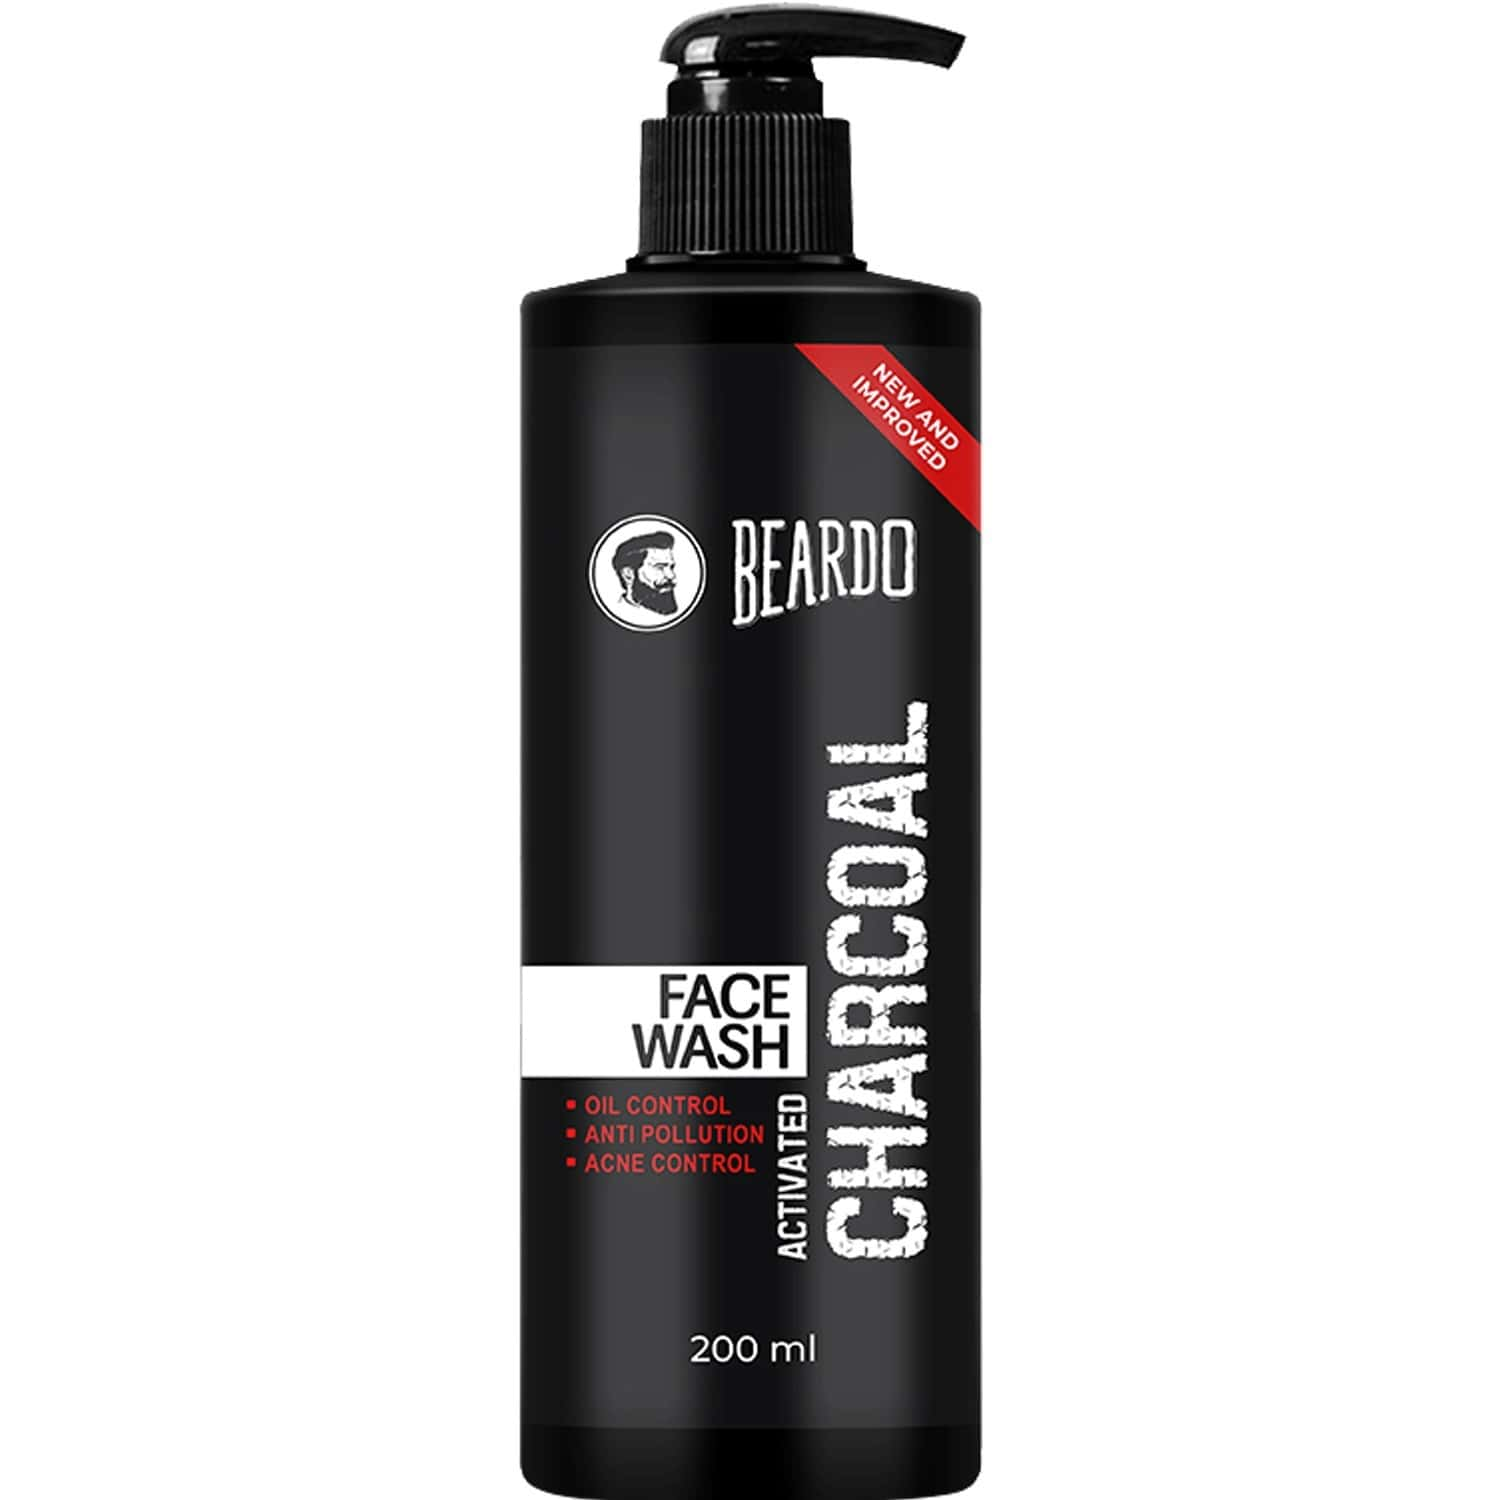 Beardo Activated Charcoal Anti-pollution Face Wash - 200 Ml